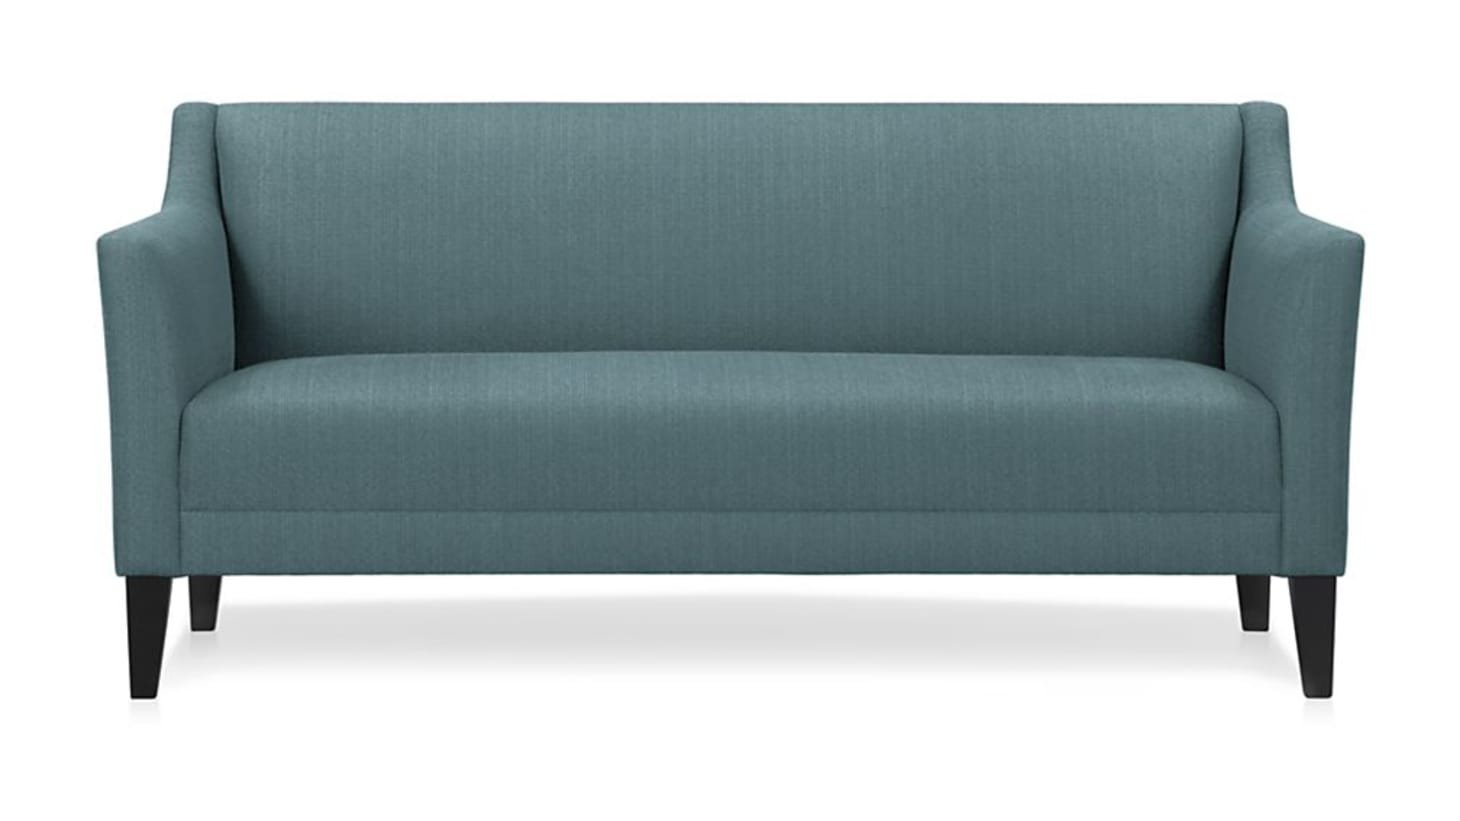 Stupendous Reviewed The Most Comfortable Sofas At Crate Barrel Uwap Interior Chair Design Uwaporg